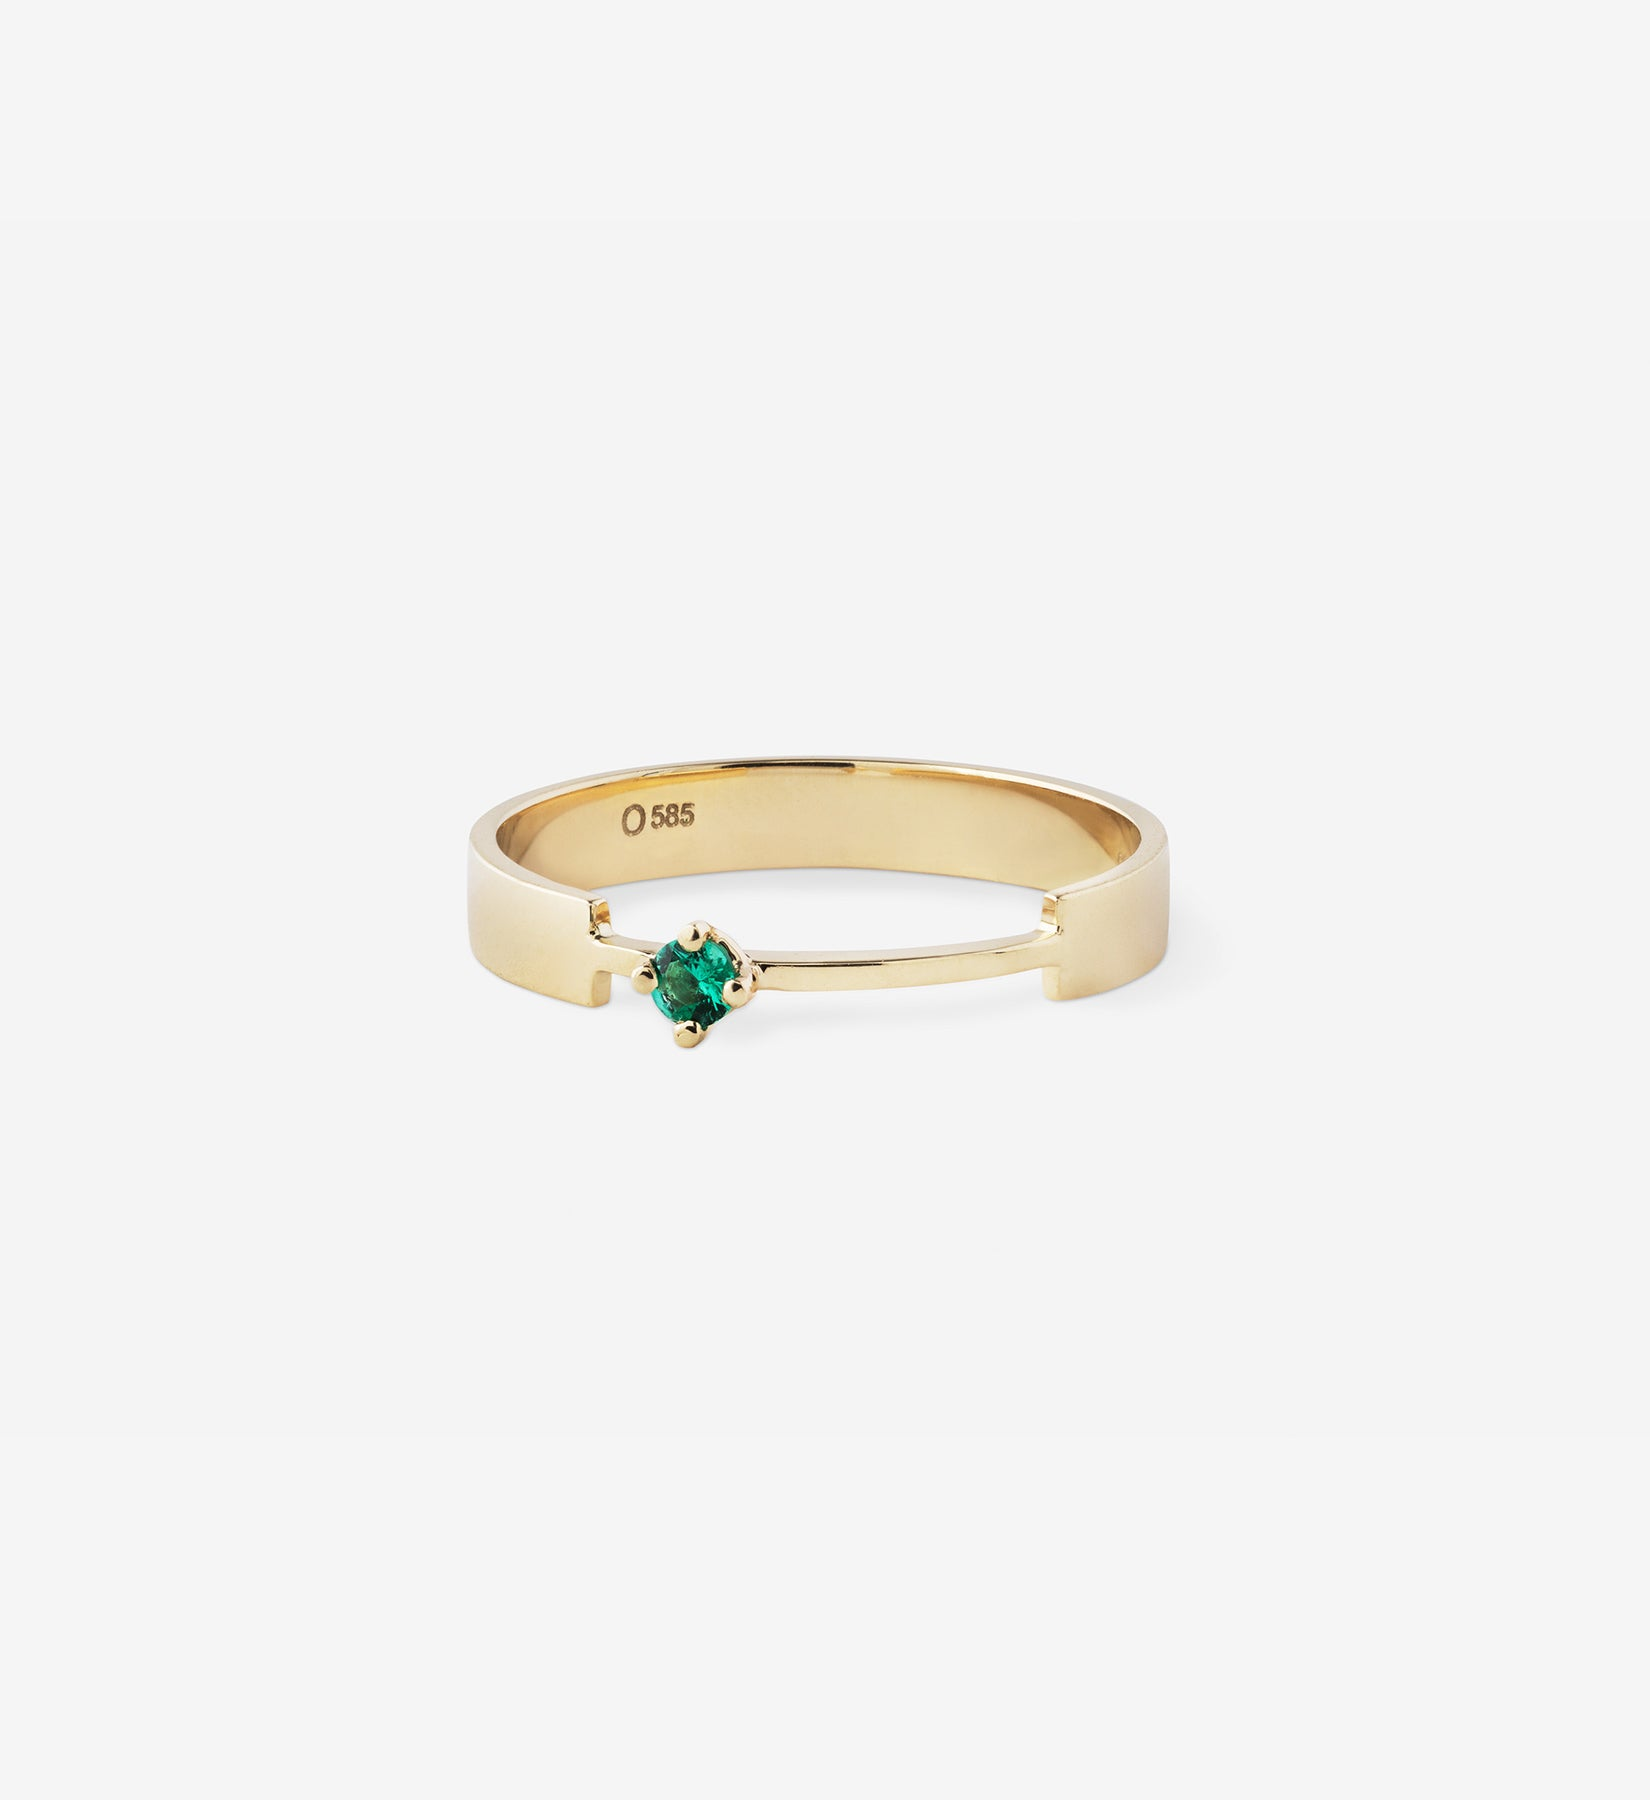 OUVERTURE, Fine jewelry, 14K gold, diamonds, golden ring, diamond ring, golden earring, diamond earring. Handcrafted jewelry. Designed in Berlin. Honestly priced. Demifine. Earparty. Stacking rings. Engagement ring, wedding ring, solitaire diamond ring, floating diamond ring, emerald ring